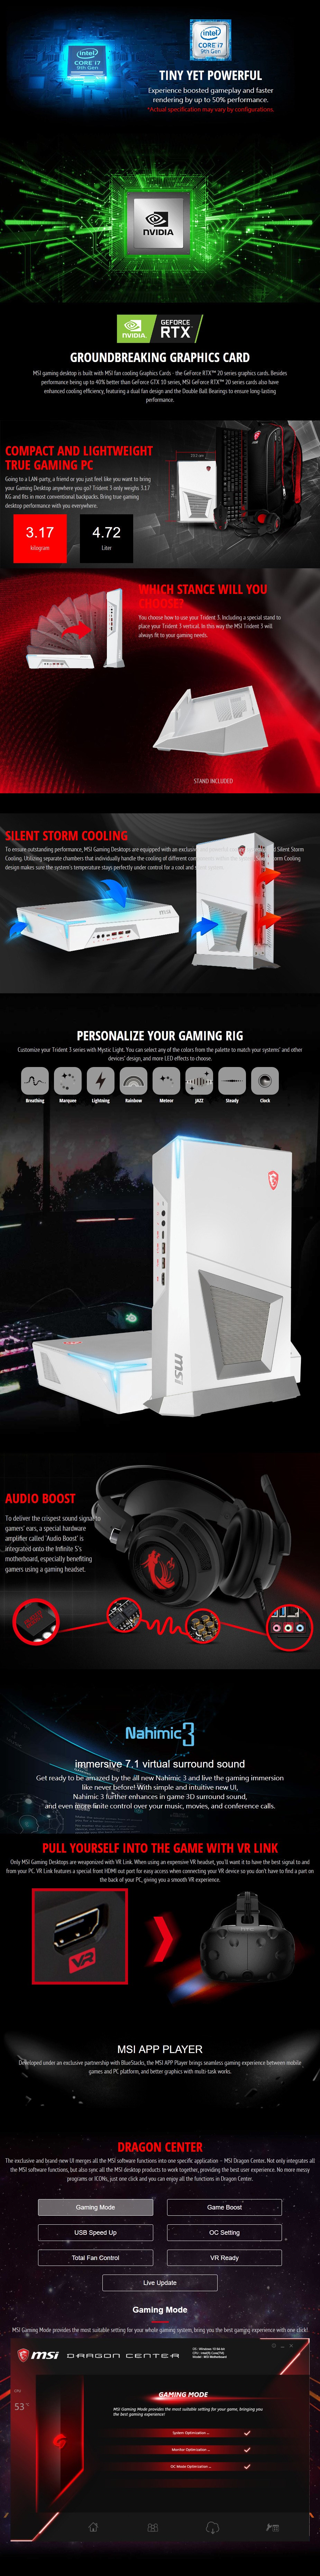 MSI Trident 3 Arctic Compact Gaming PC i7-9700F 16GB 1TB+512GB GTX1660Ti Win10H  - Overview 1